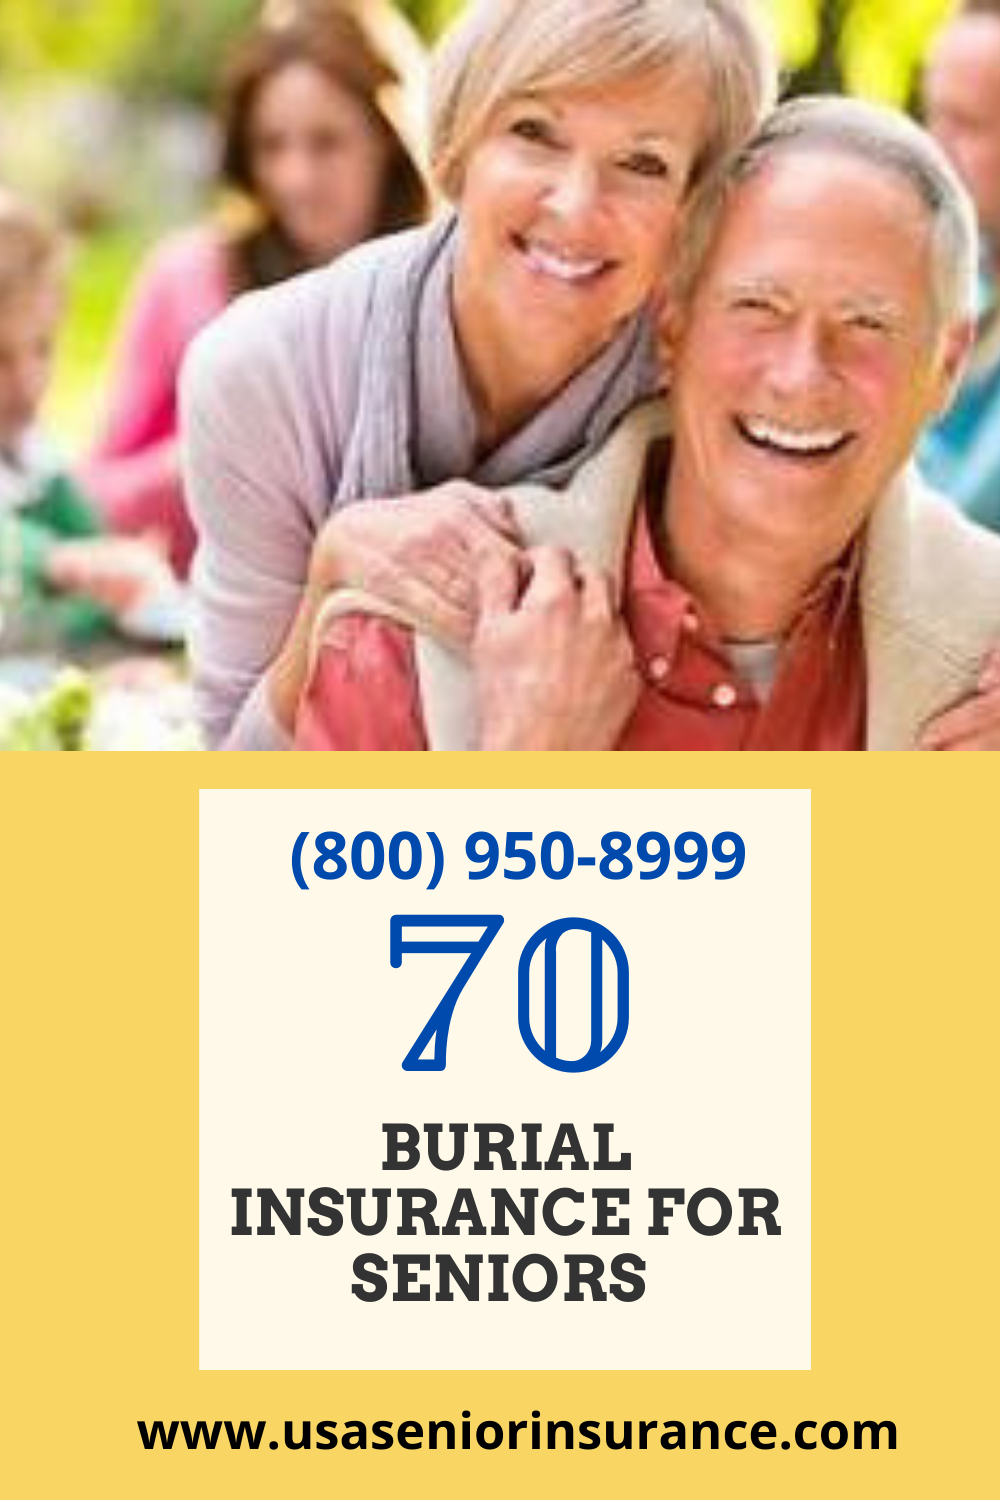 Know The Burial Insurance For Senior In 2020 Life Insurance